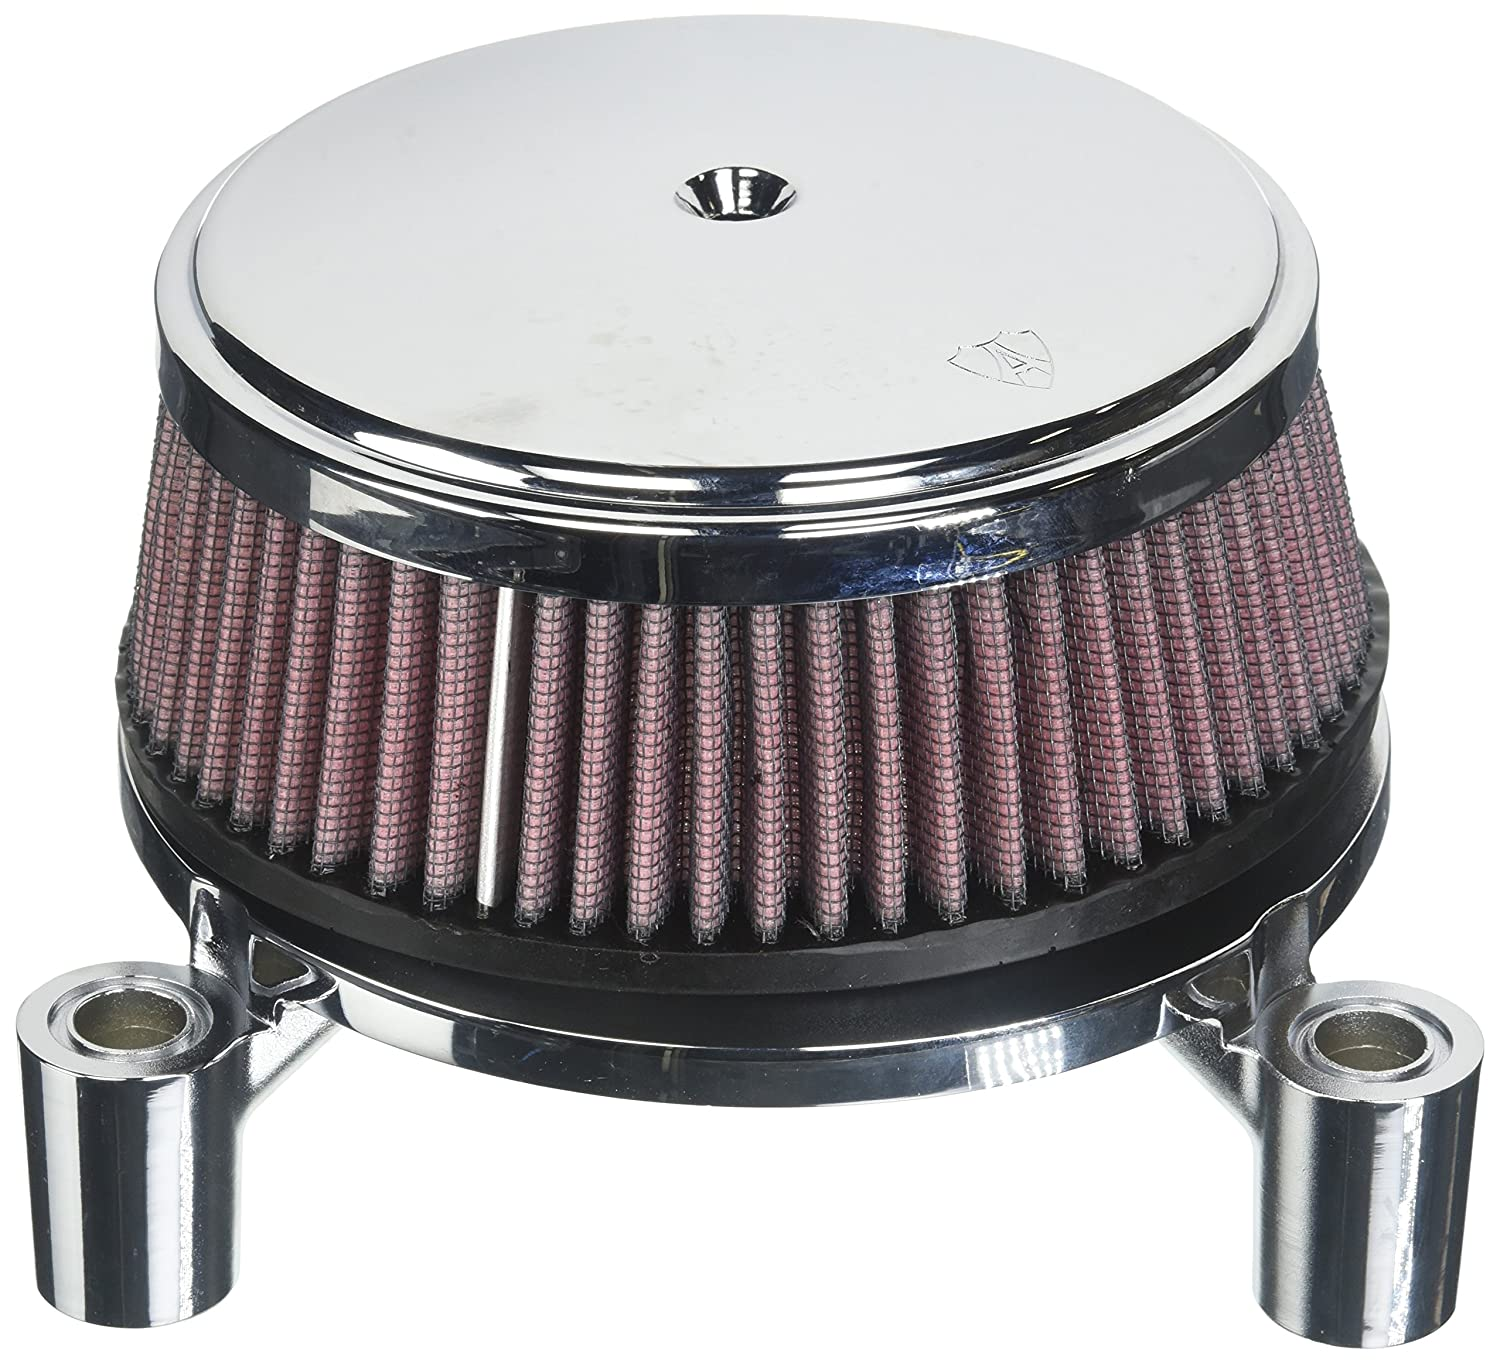 Arlen Ness Billet Sucker Stage I Air Filter Kit with Steel Cover - Smooth Chrome - Red Filter 18-320